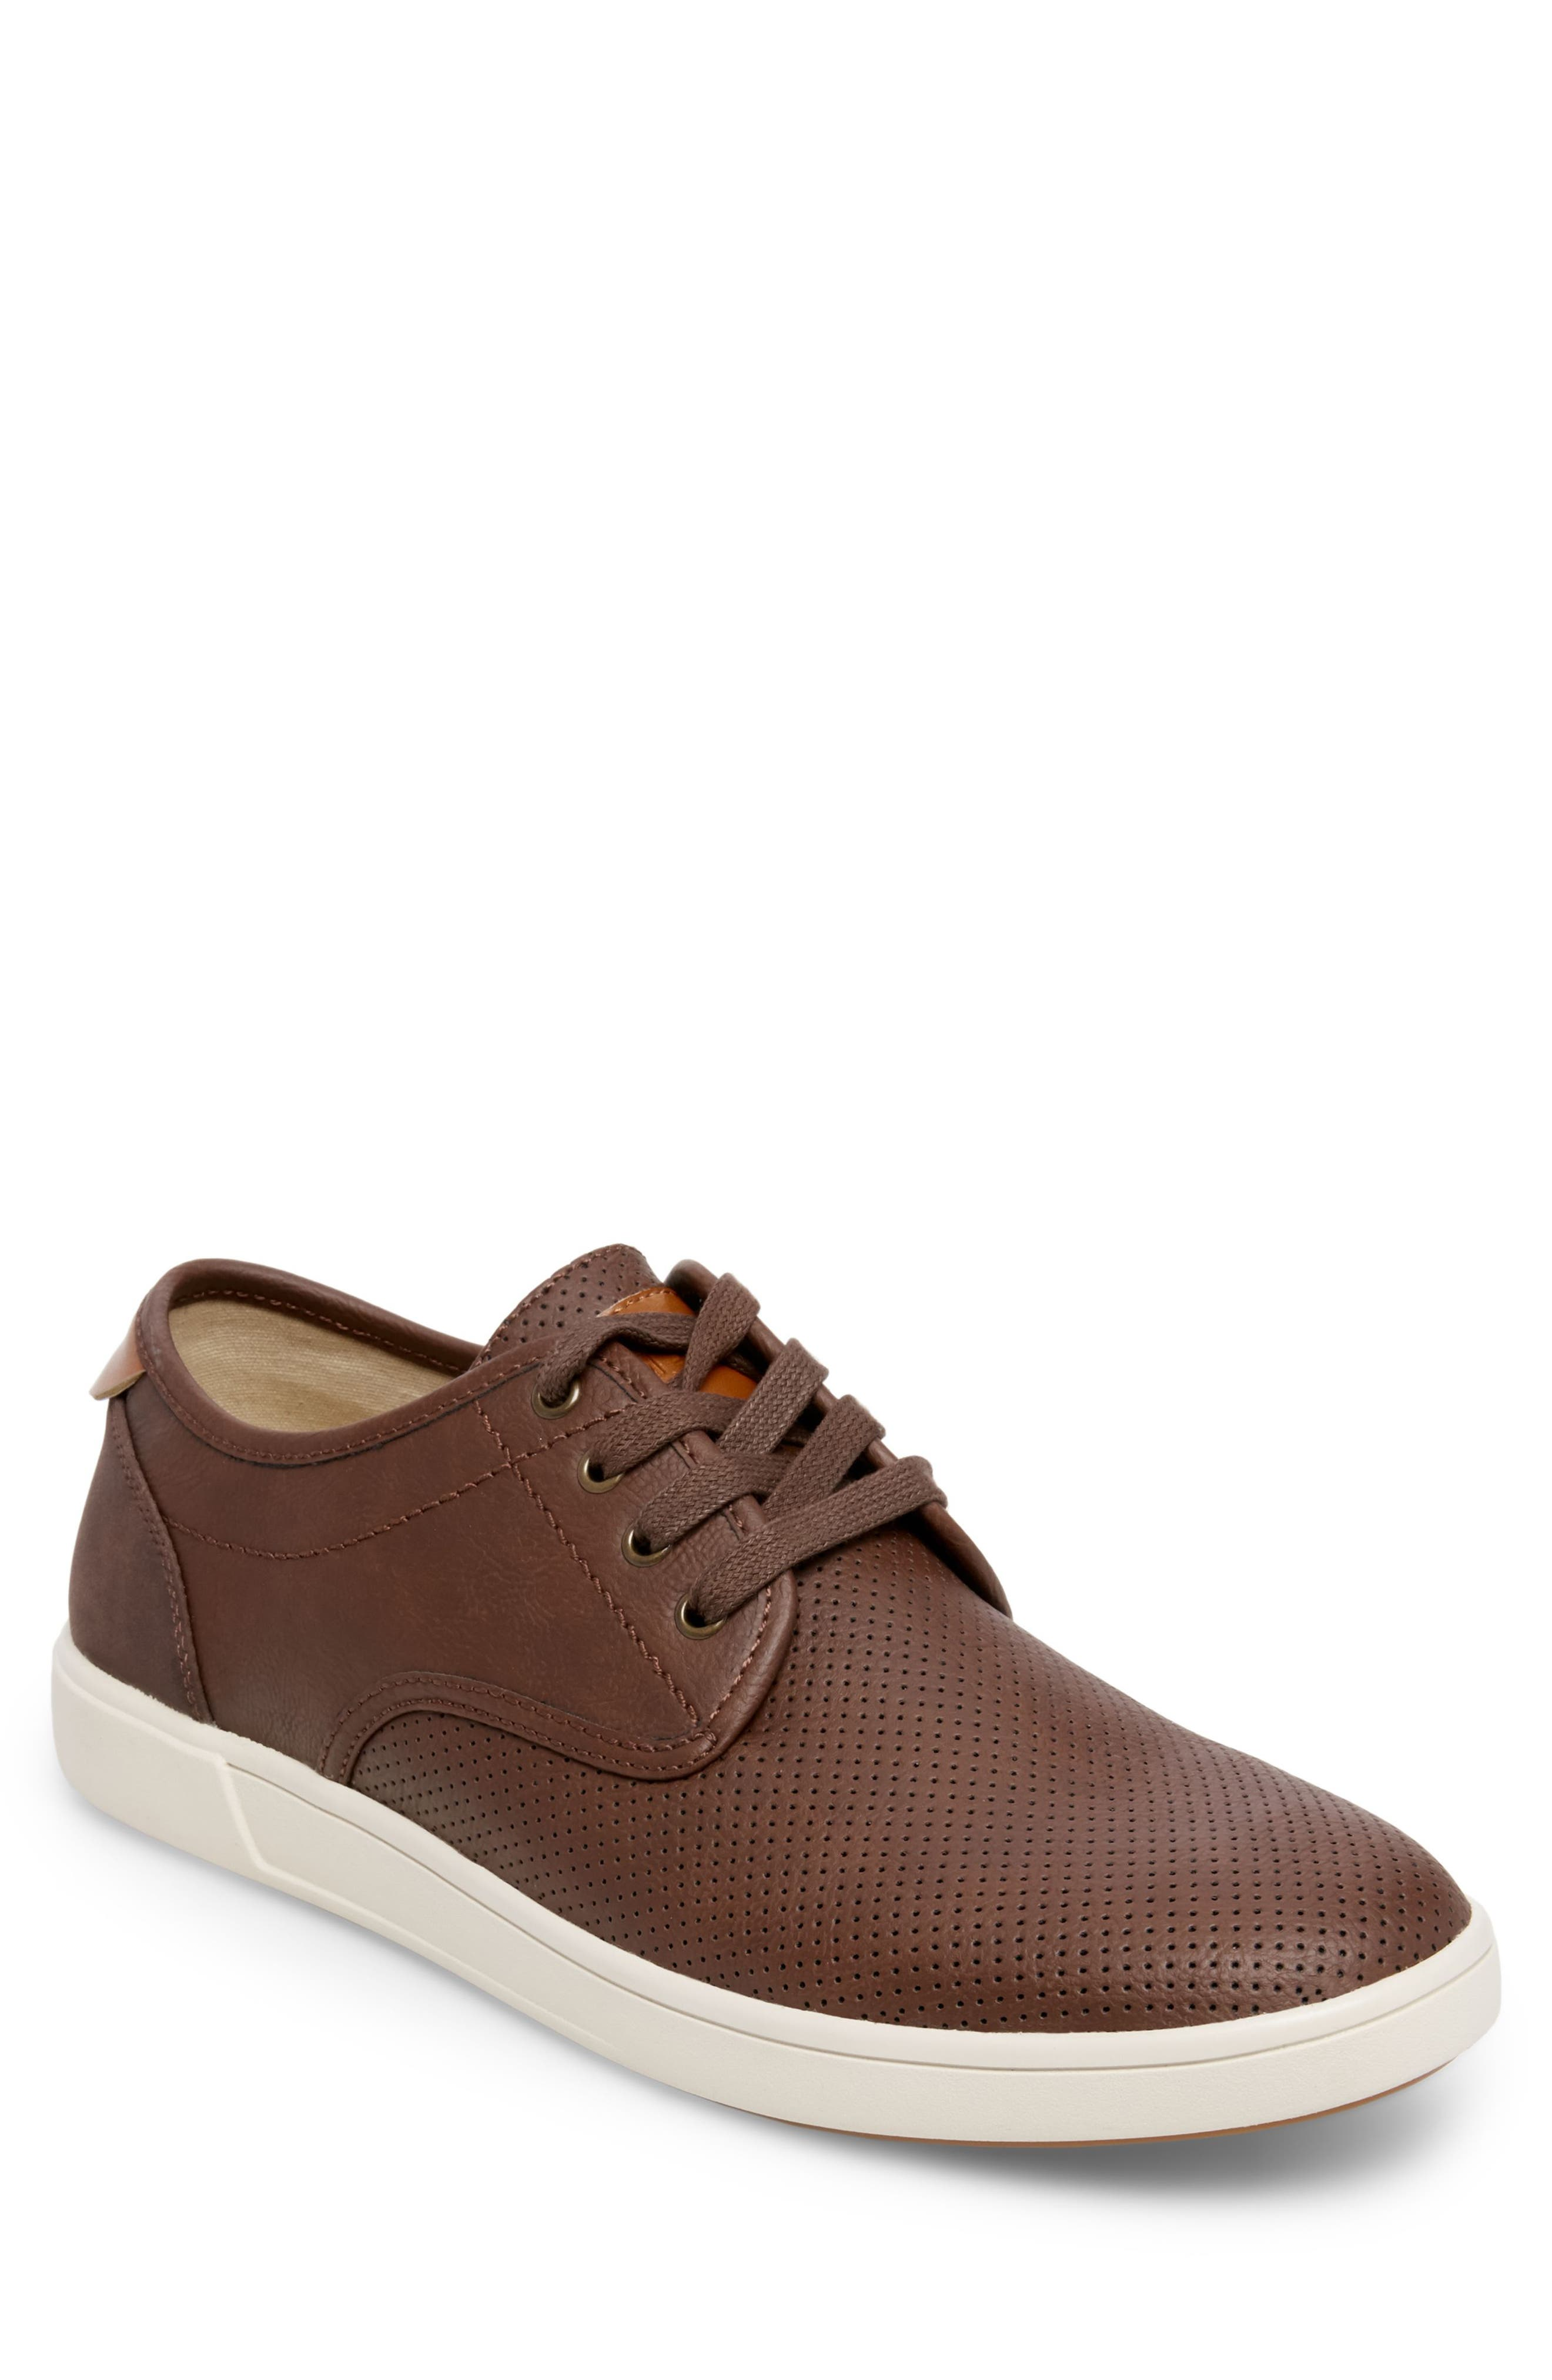 Flyerz Perforated Sneaker,                         Main,                         color, Cognac